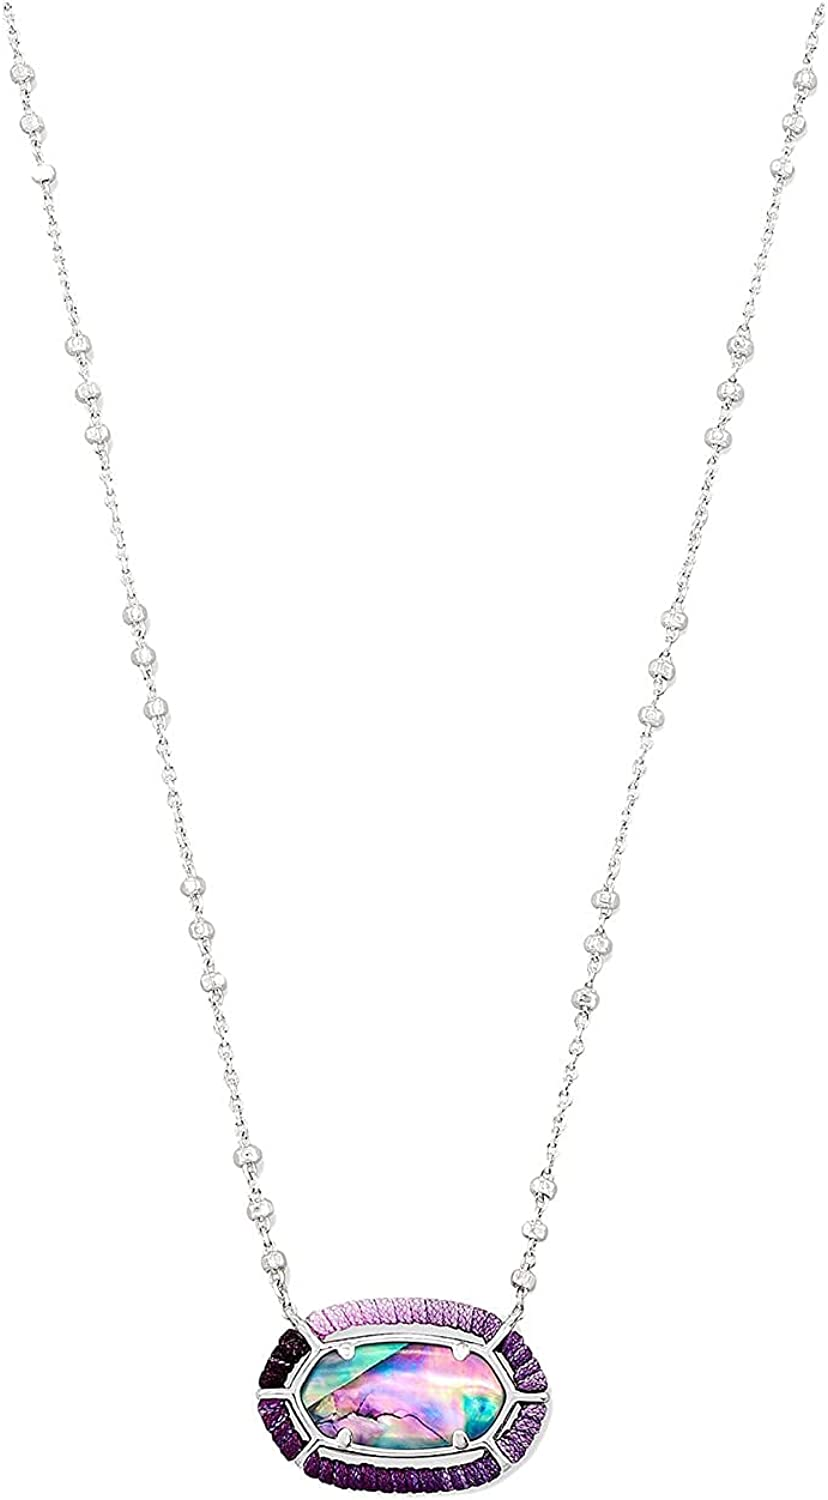 Kendra Scott Threaded Branded goods Elisa Pendant Necklace Credence Silver Bright Lilac